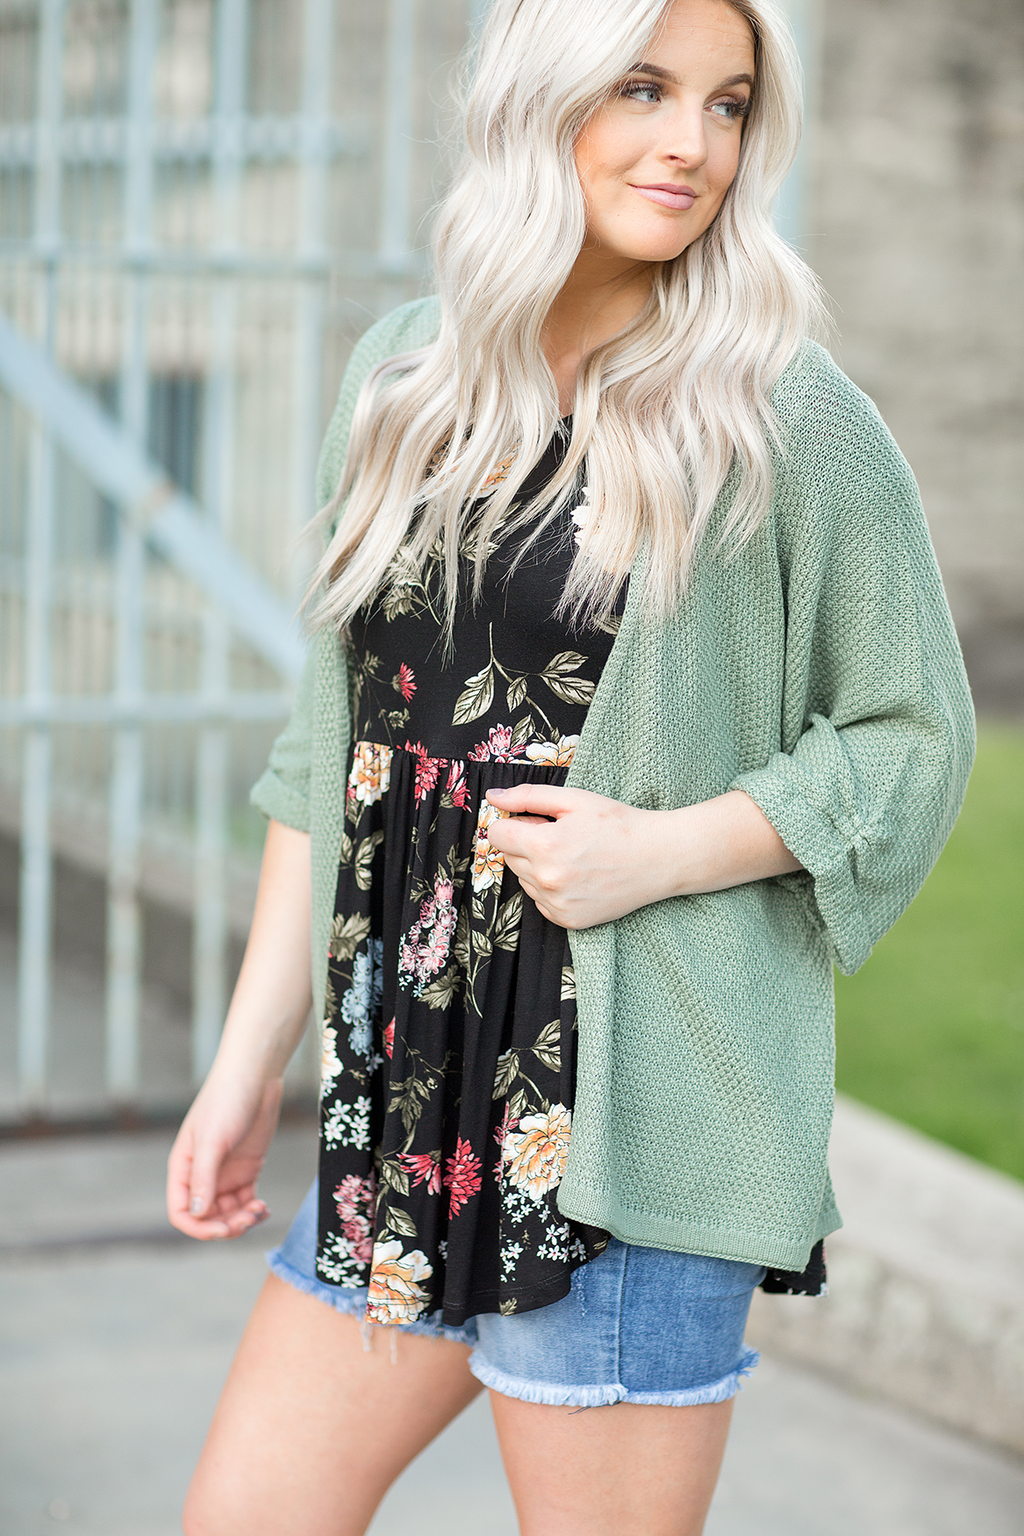 Here To Stay Sweater Cardigan in Sage